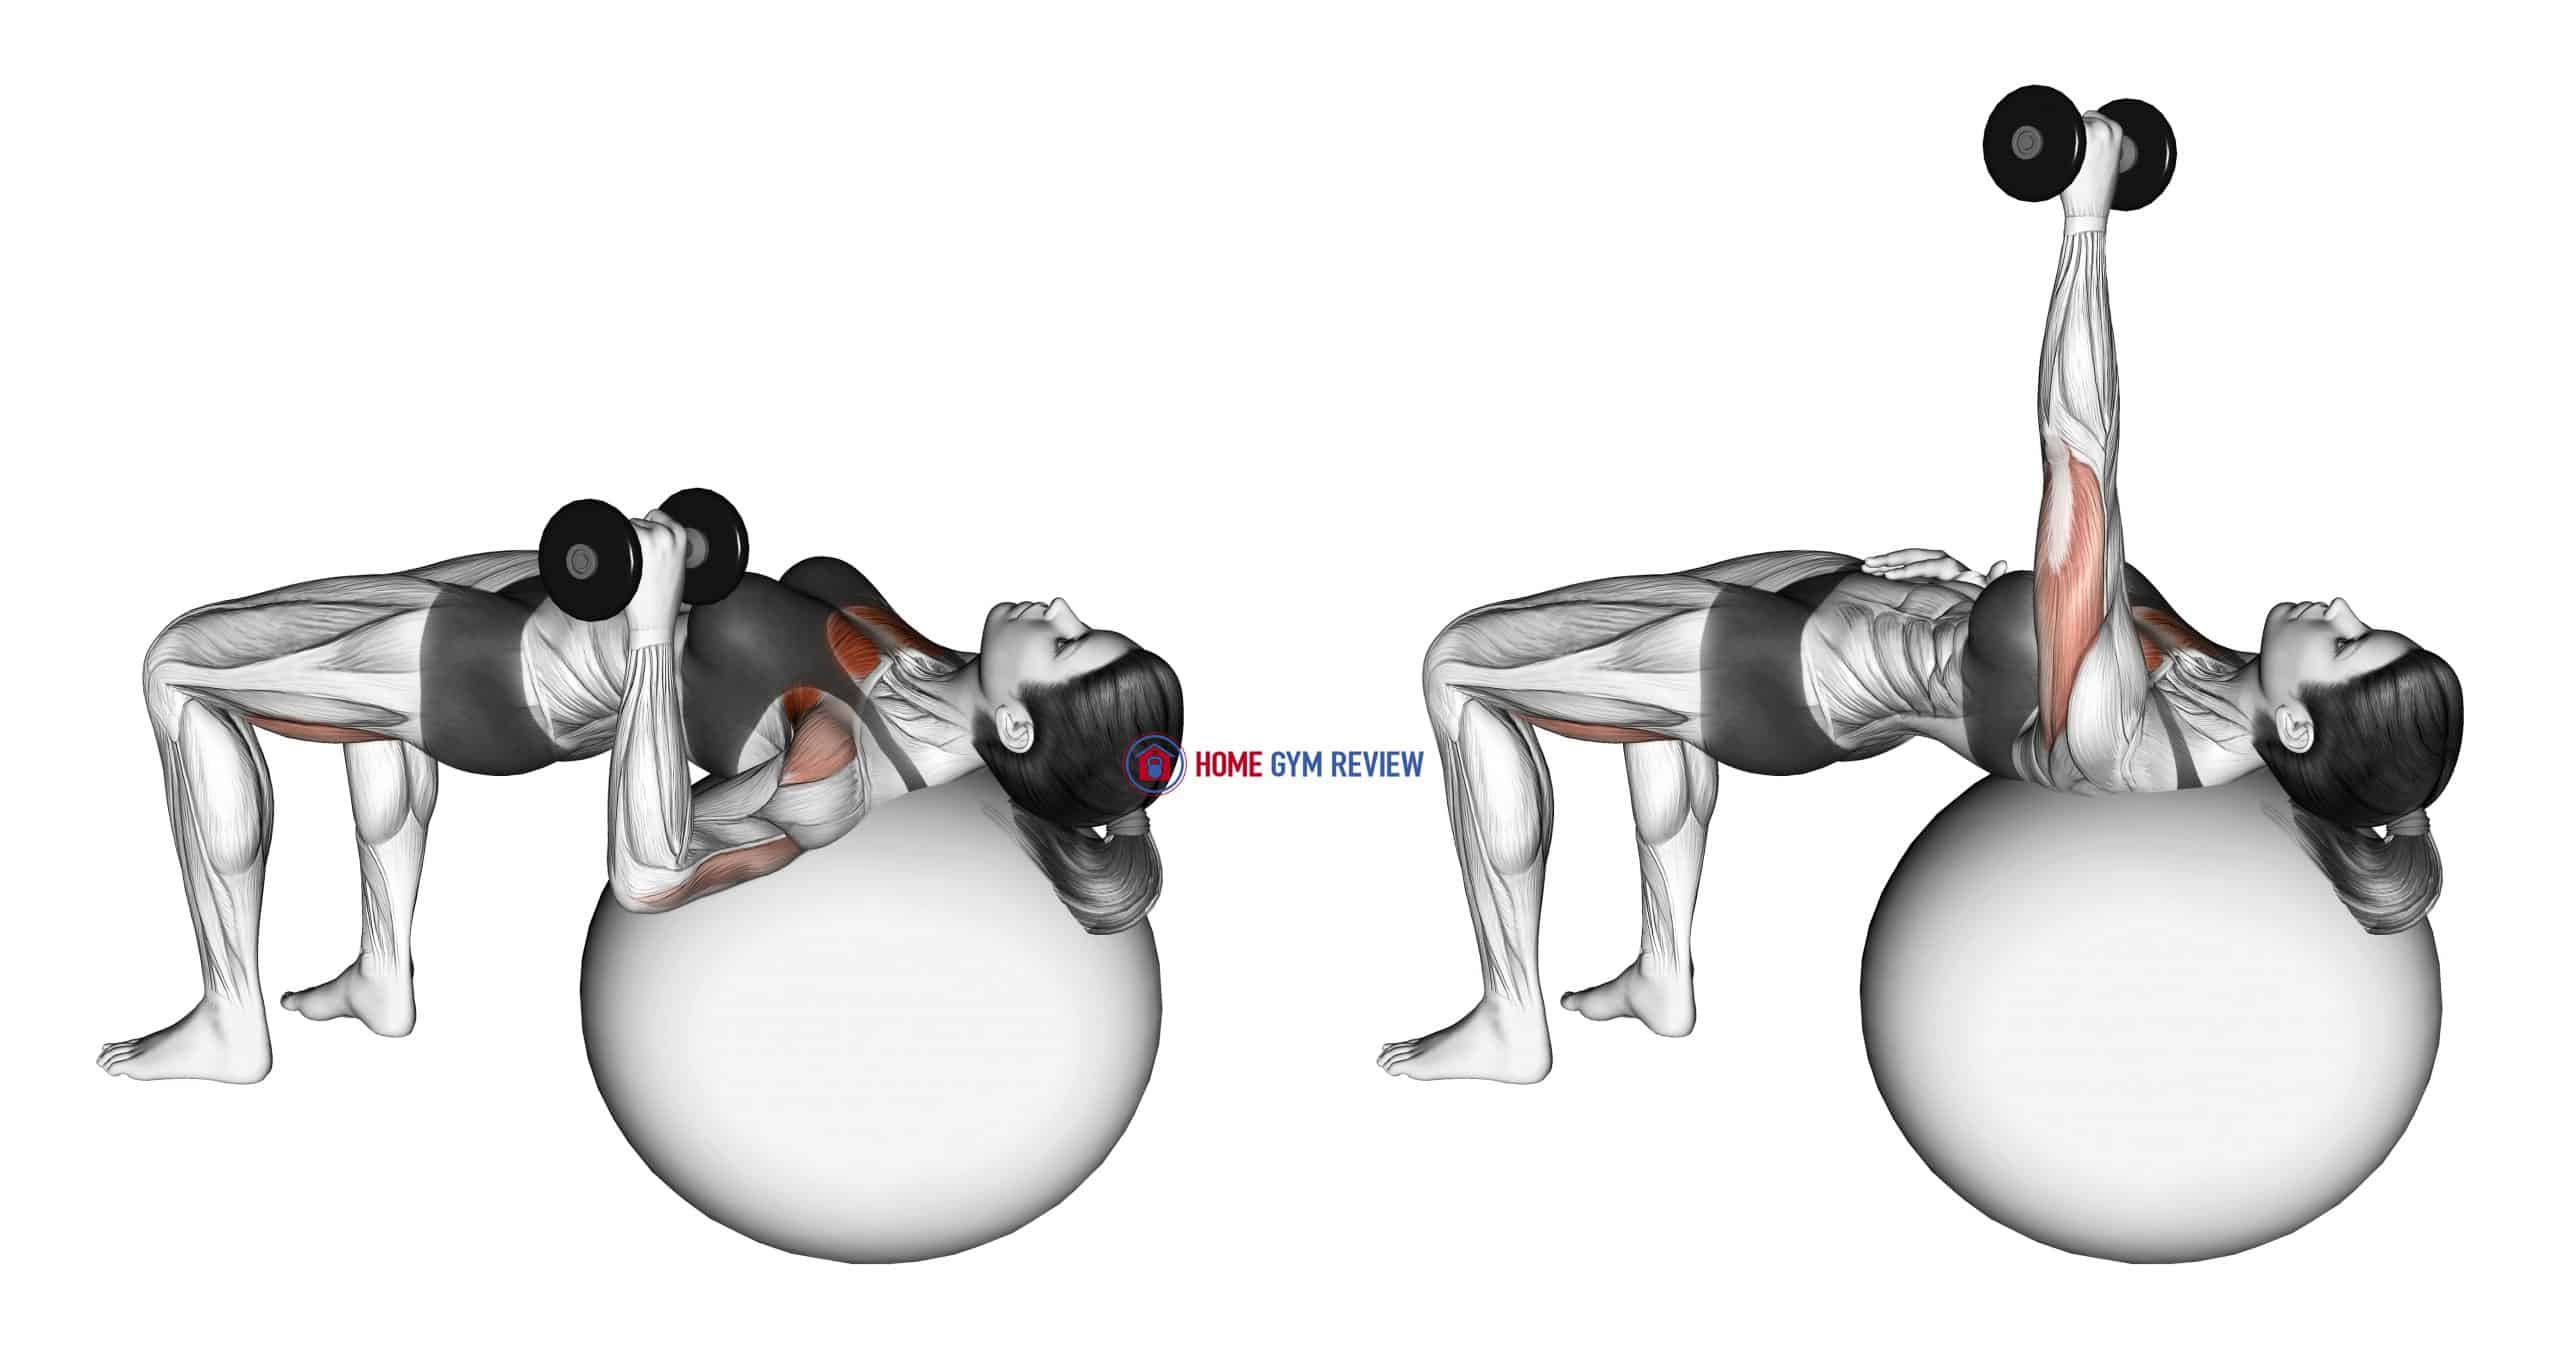 Dumbbell One Arm Press (on stability ball)